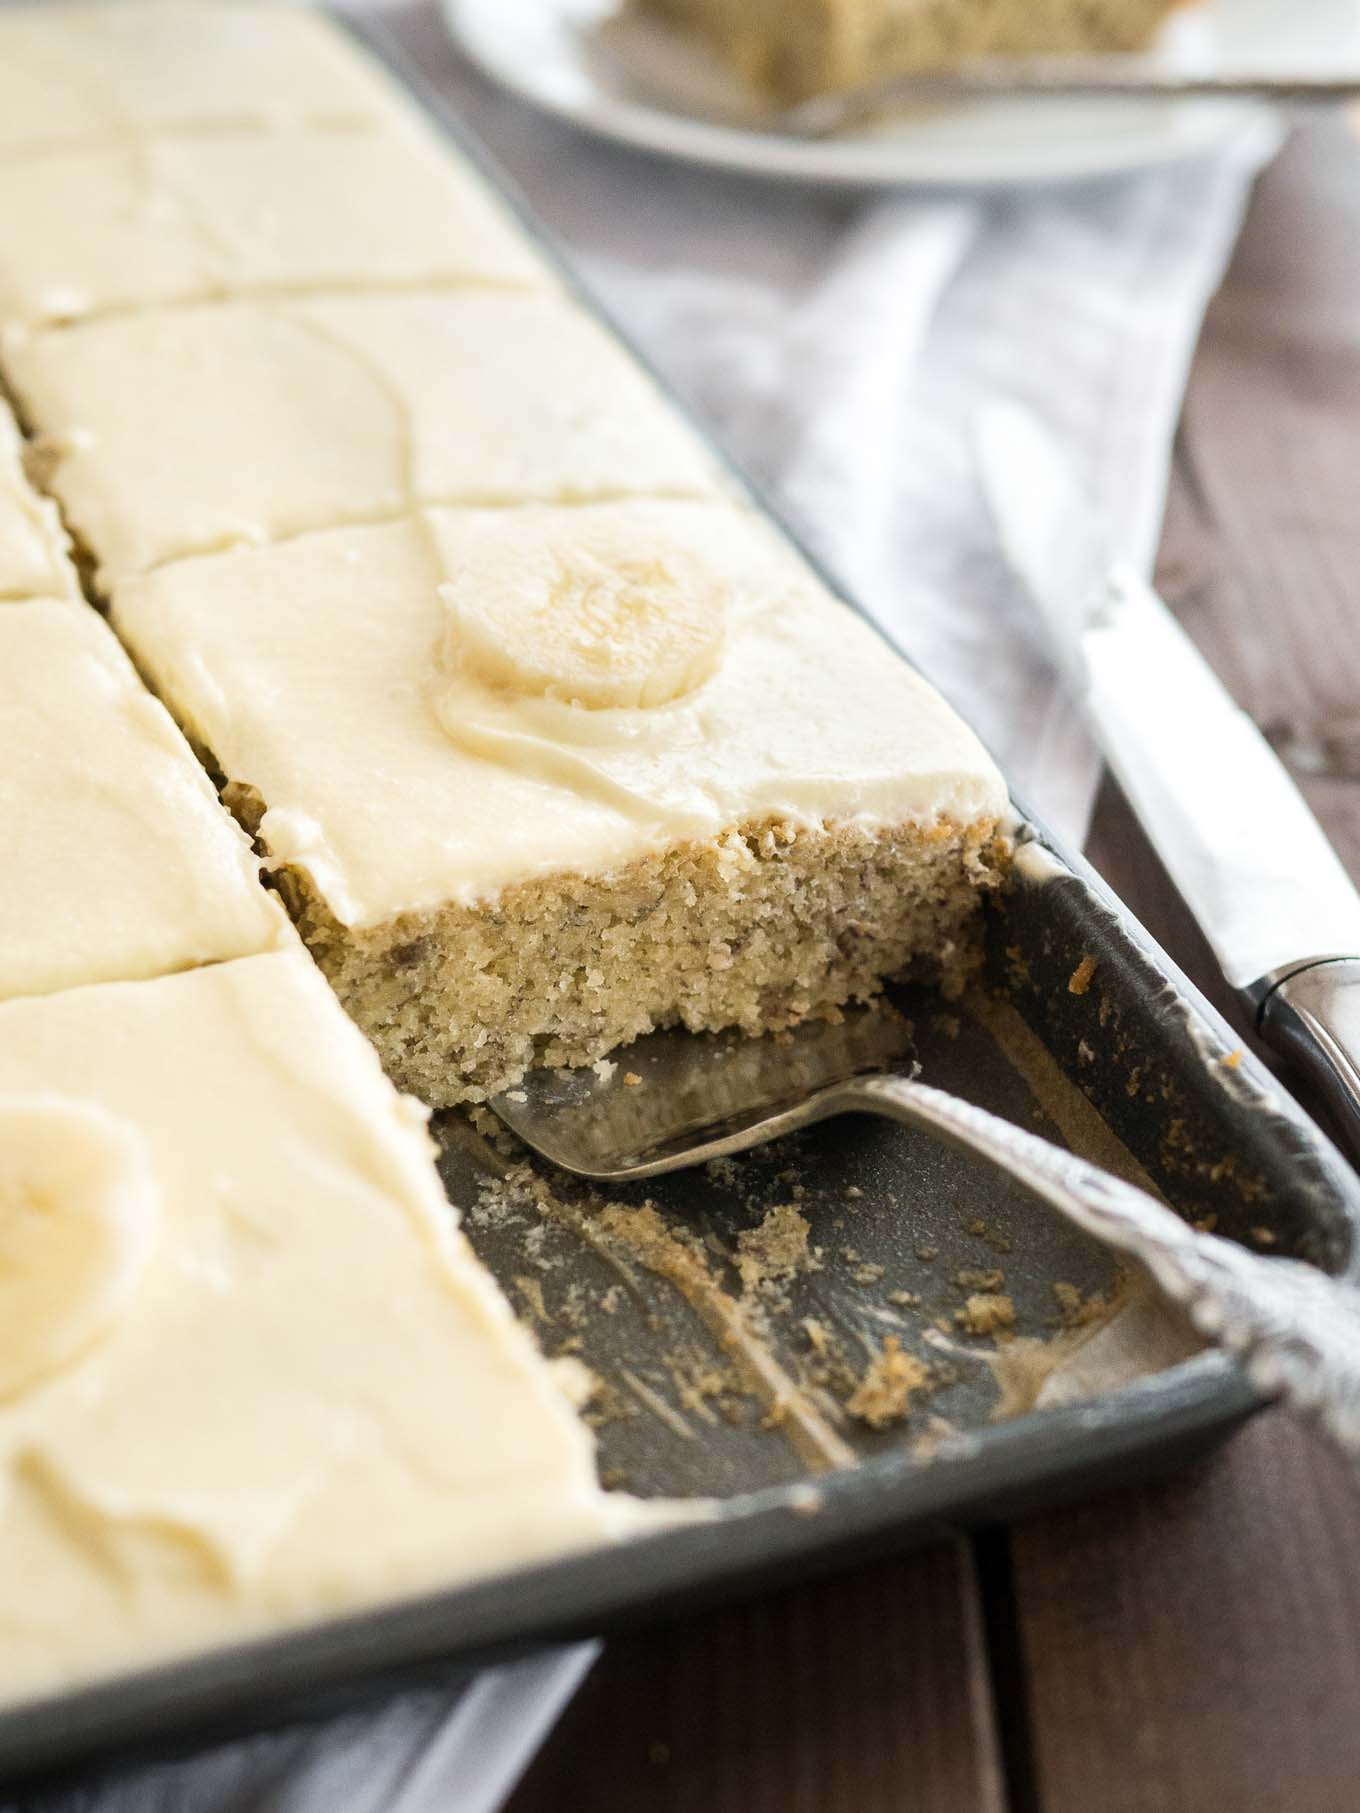 Easy Banana Cake - this fluffy and moist sheet cake has a mascarpone frosting on top and is ready in under 30 mins! A perfect cake to use overripe bananas.